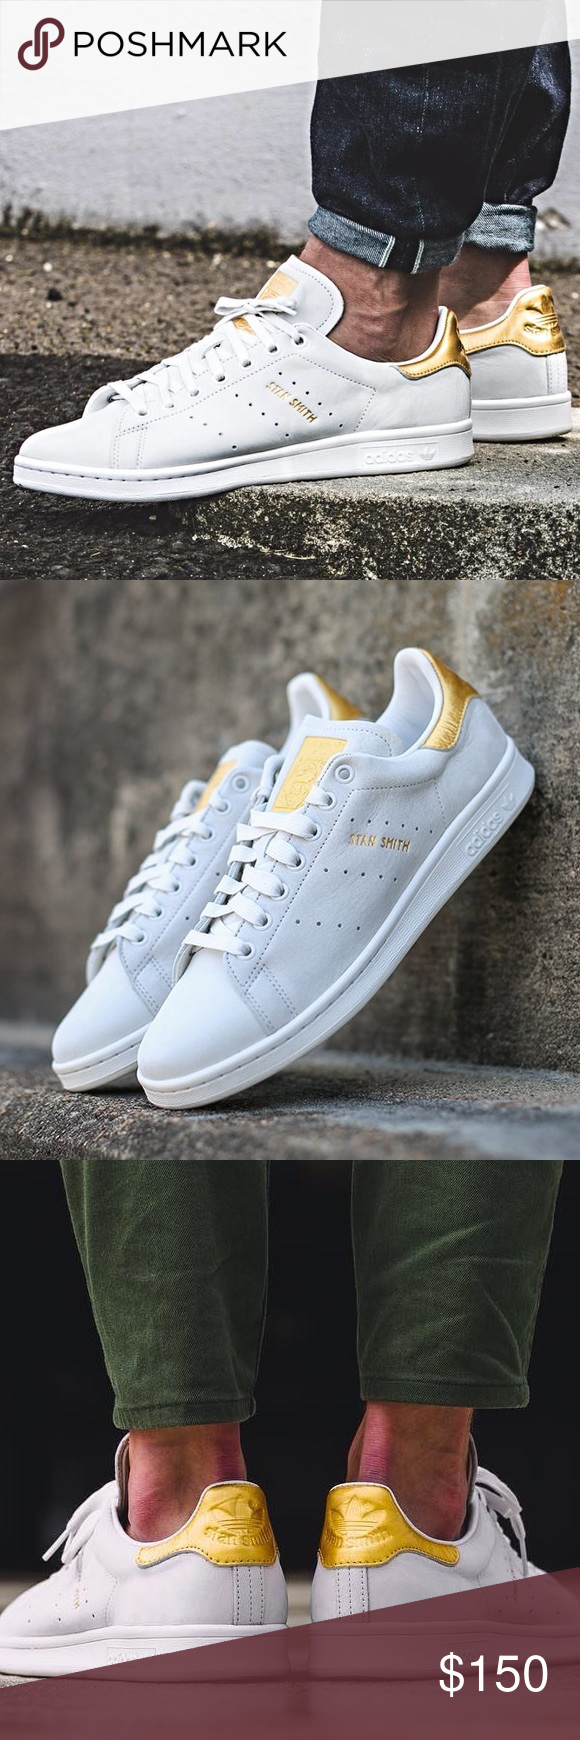 buy popular ee26a 3f7cd RARE Adidas Stan Smith 24k Gold Sneakers 6.5 8 Beautiful and ...